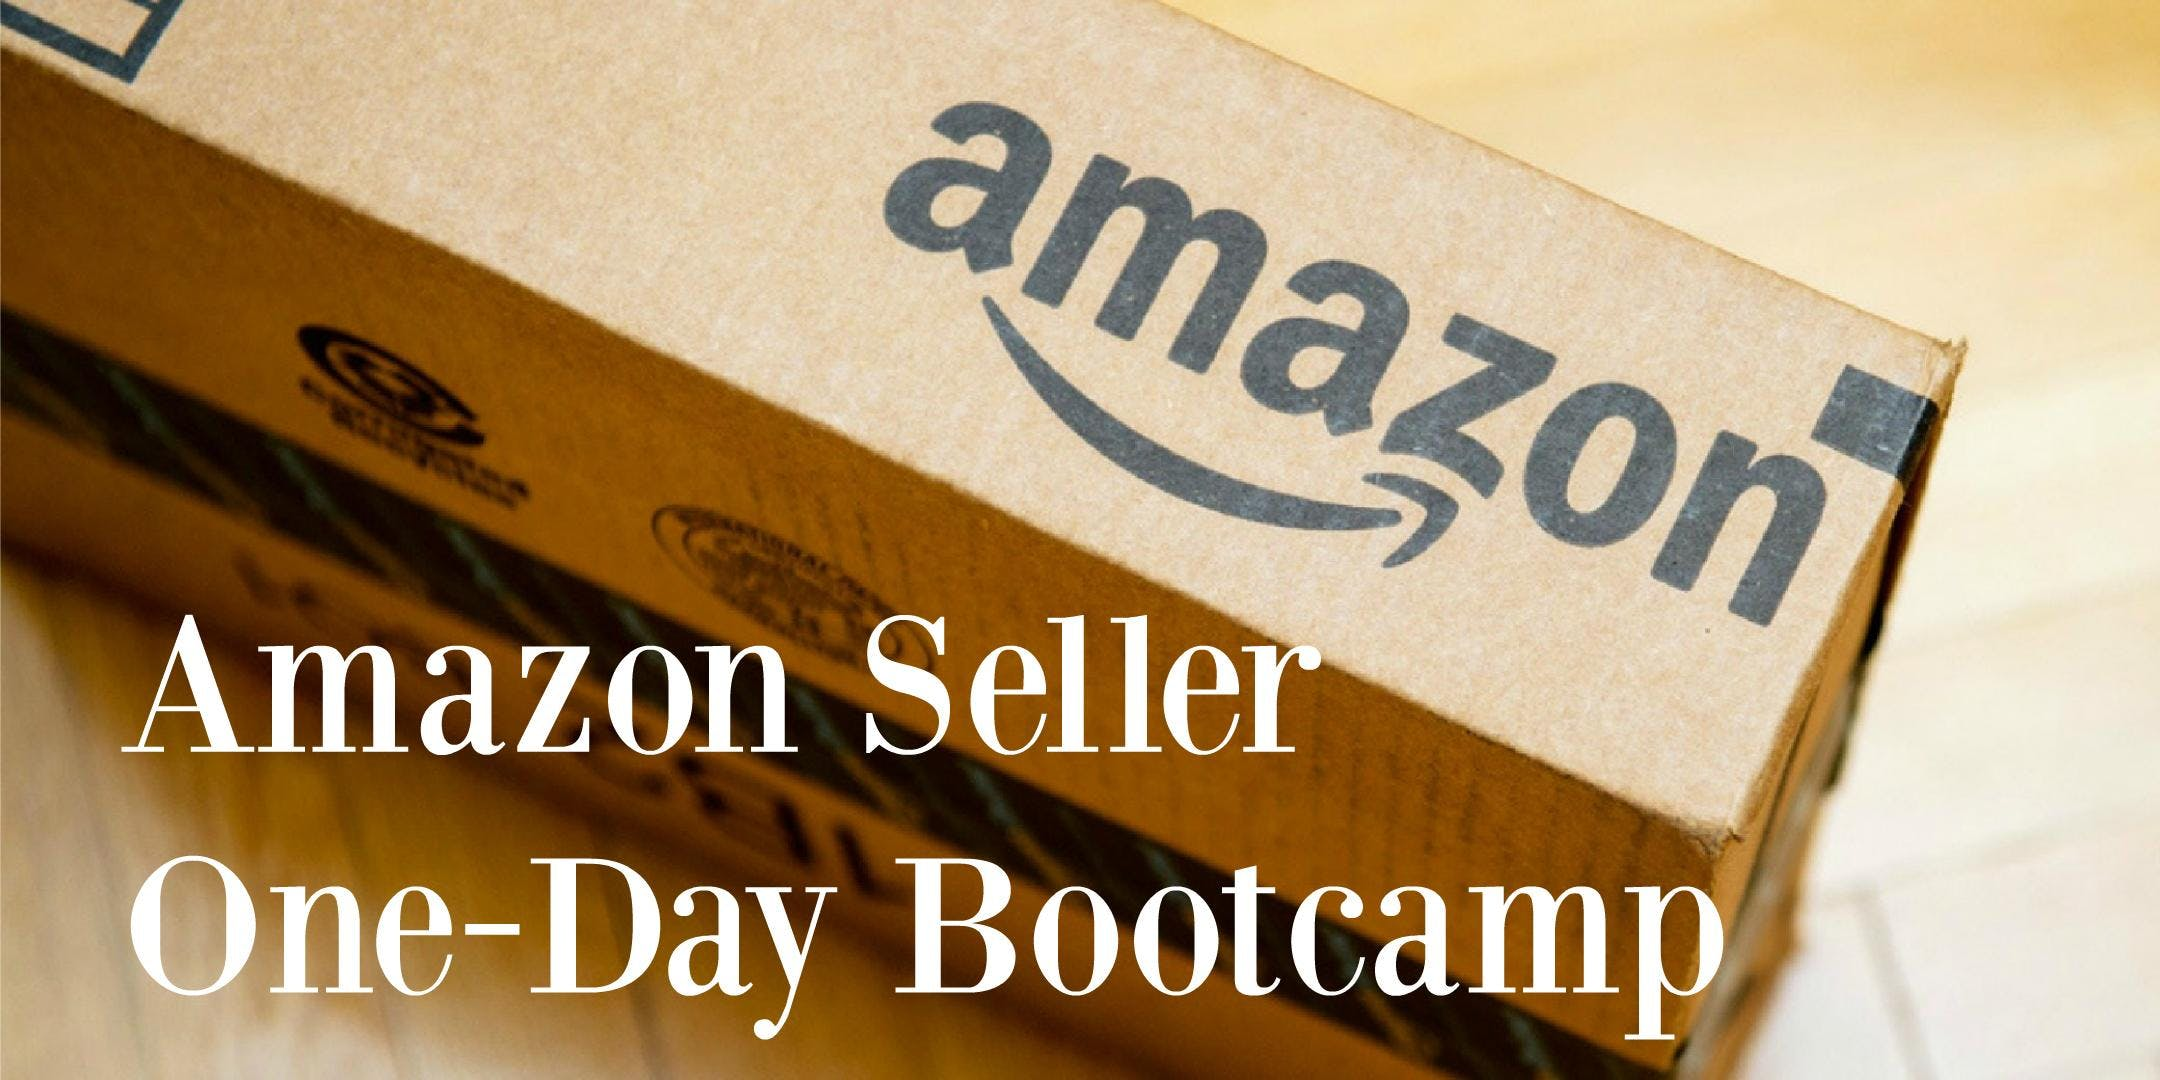 Amazon Seller One-Day Bootcamp (Los Angeles, CA)